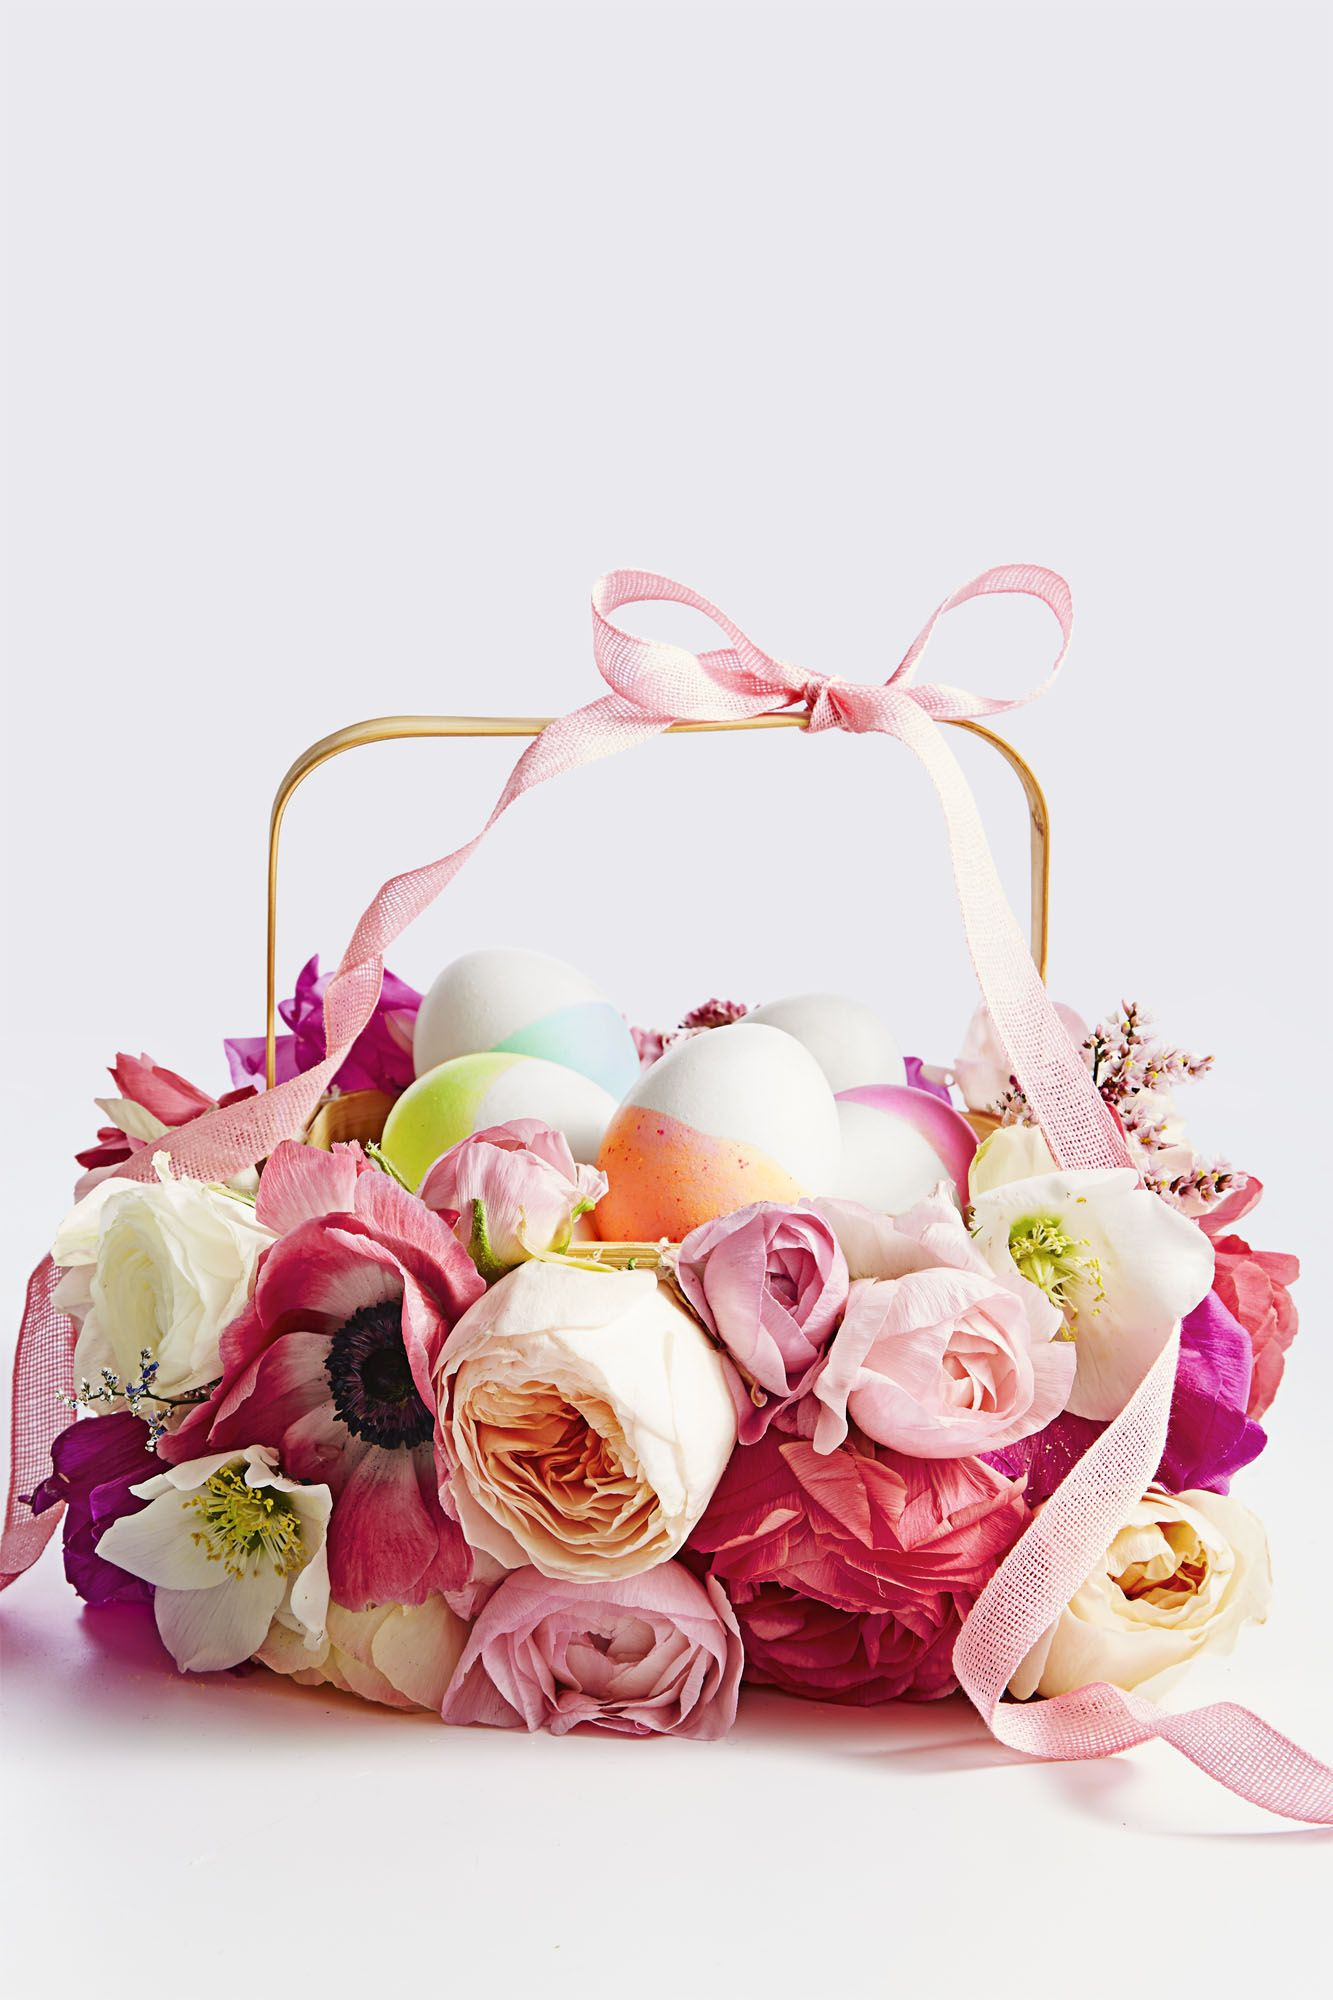 37019c1a5fdfe 32 DIY Easter Basket Ideas - Unique Homemade Easter Baskets